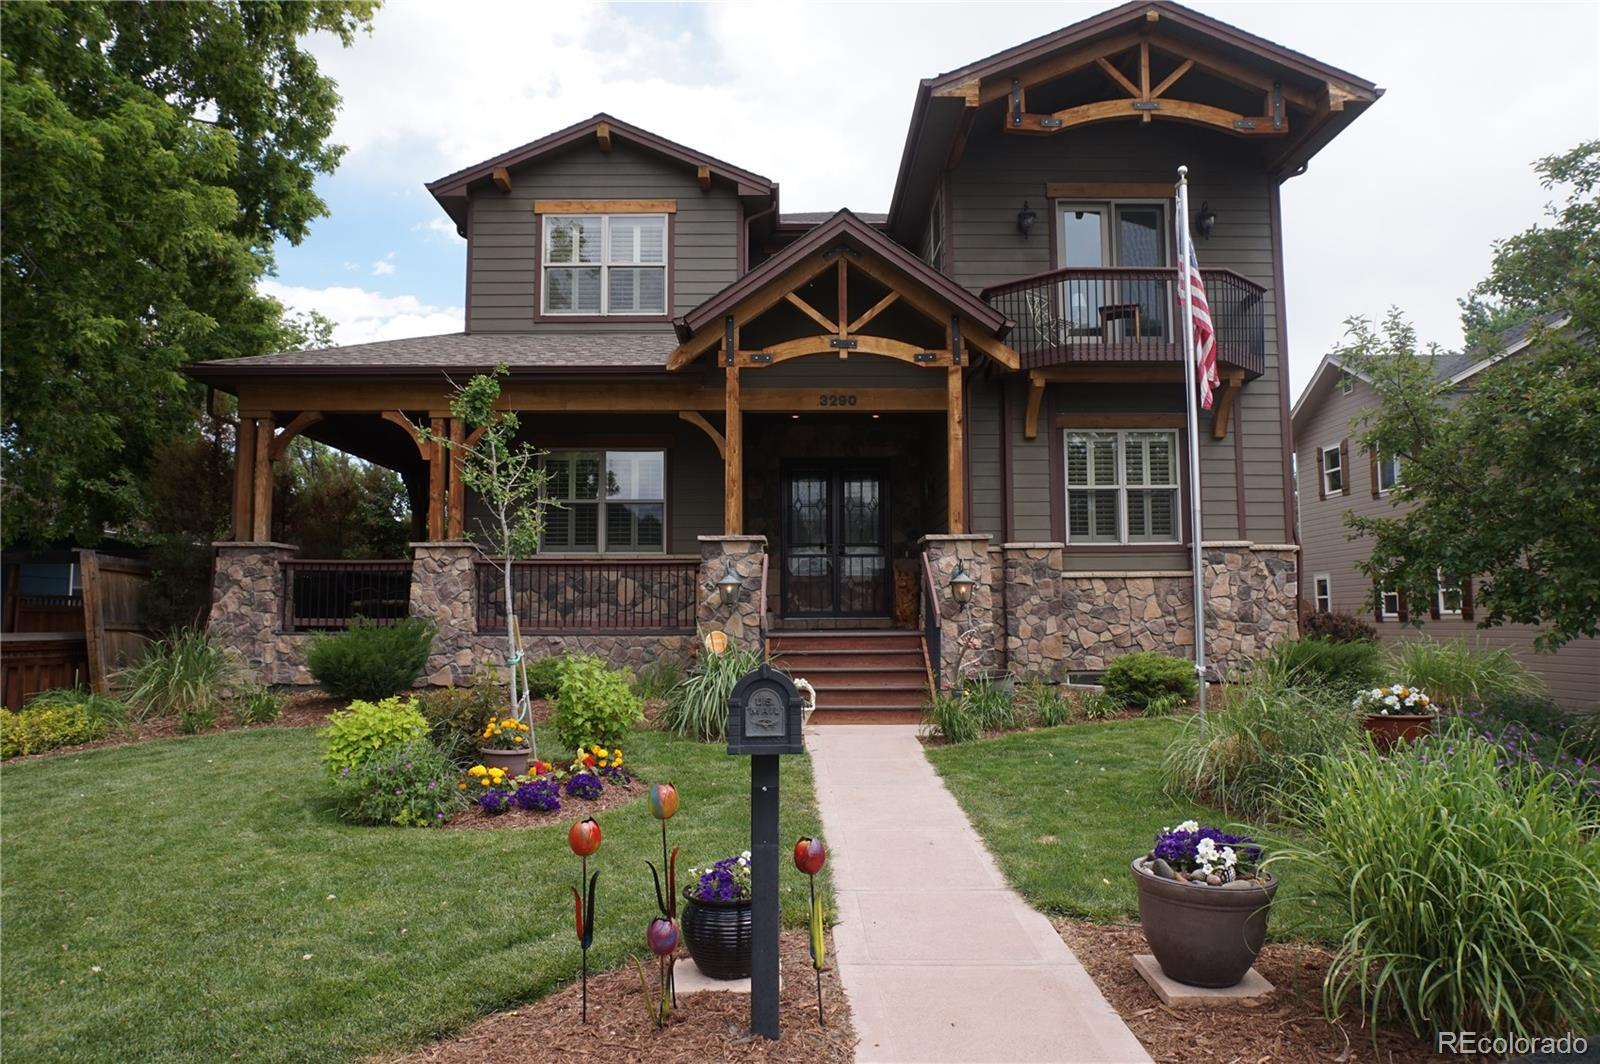 MLS# 8433922 - 2 - 3290 S Corona Street, Englewood, CO 80113